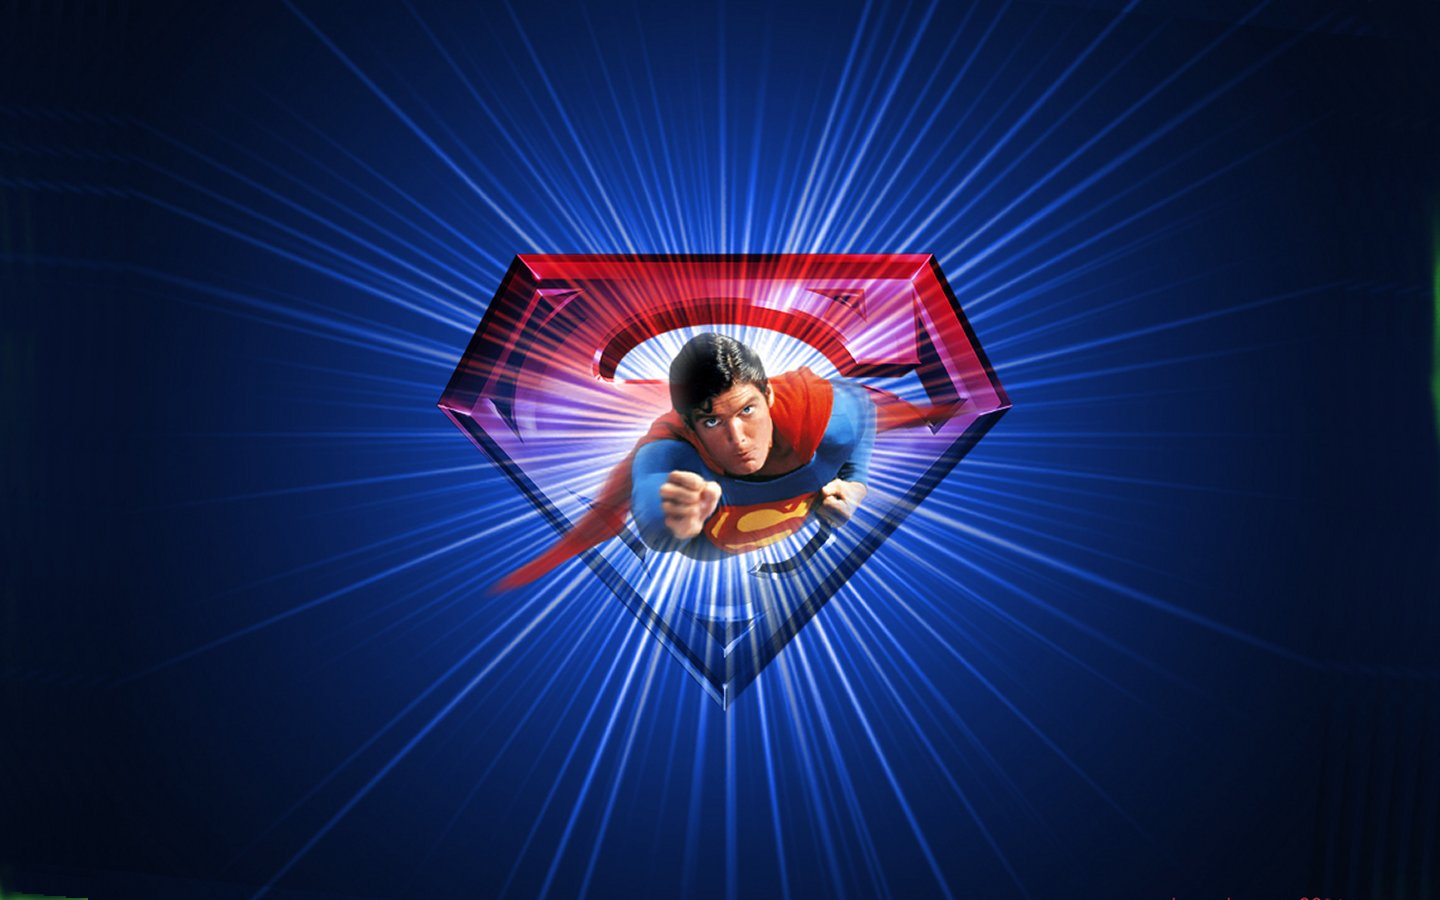 04 march 2010 george spigot 39 s blog - Superman screensaver ...